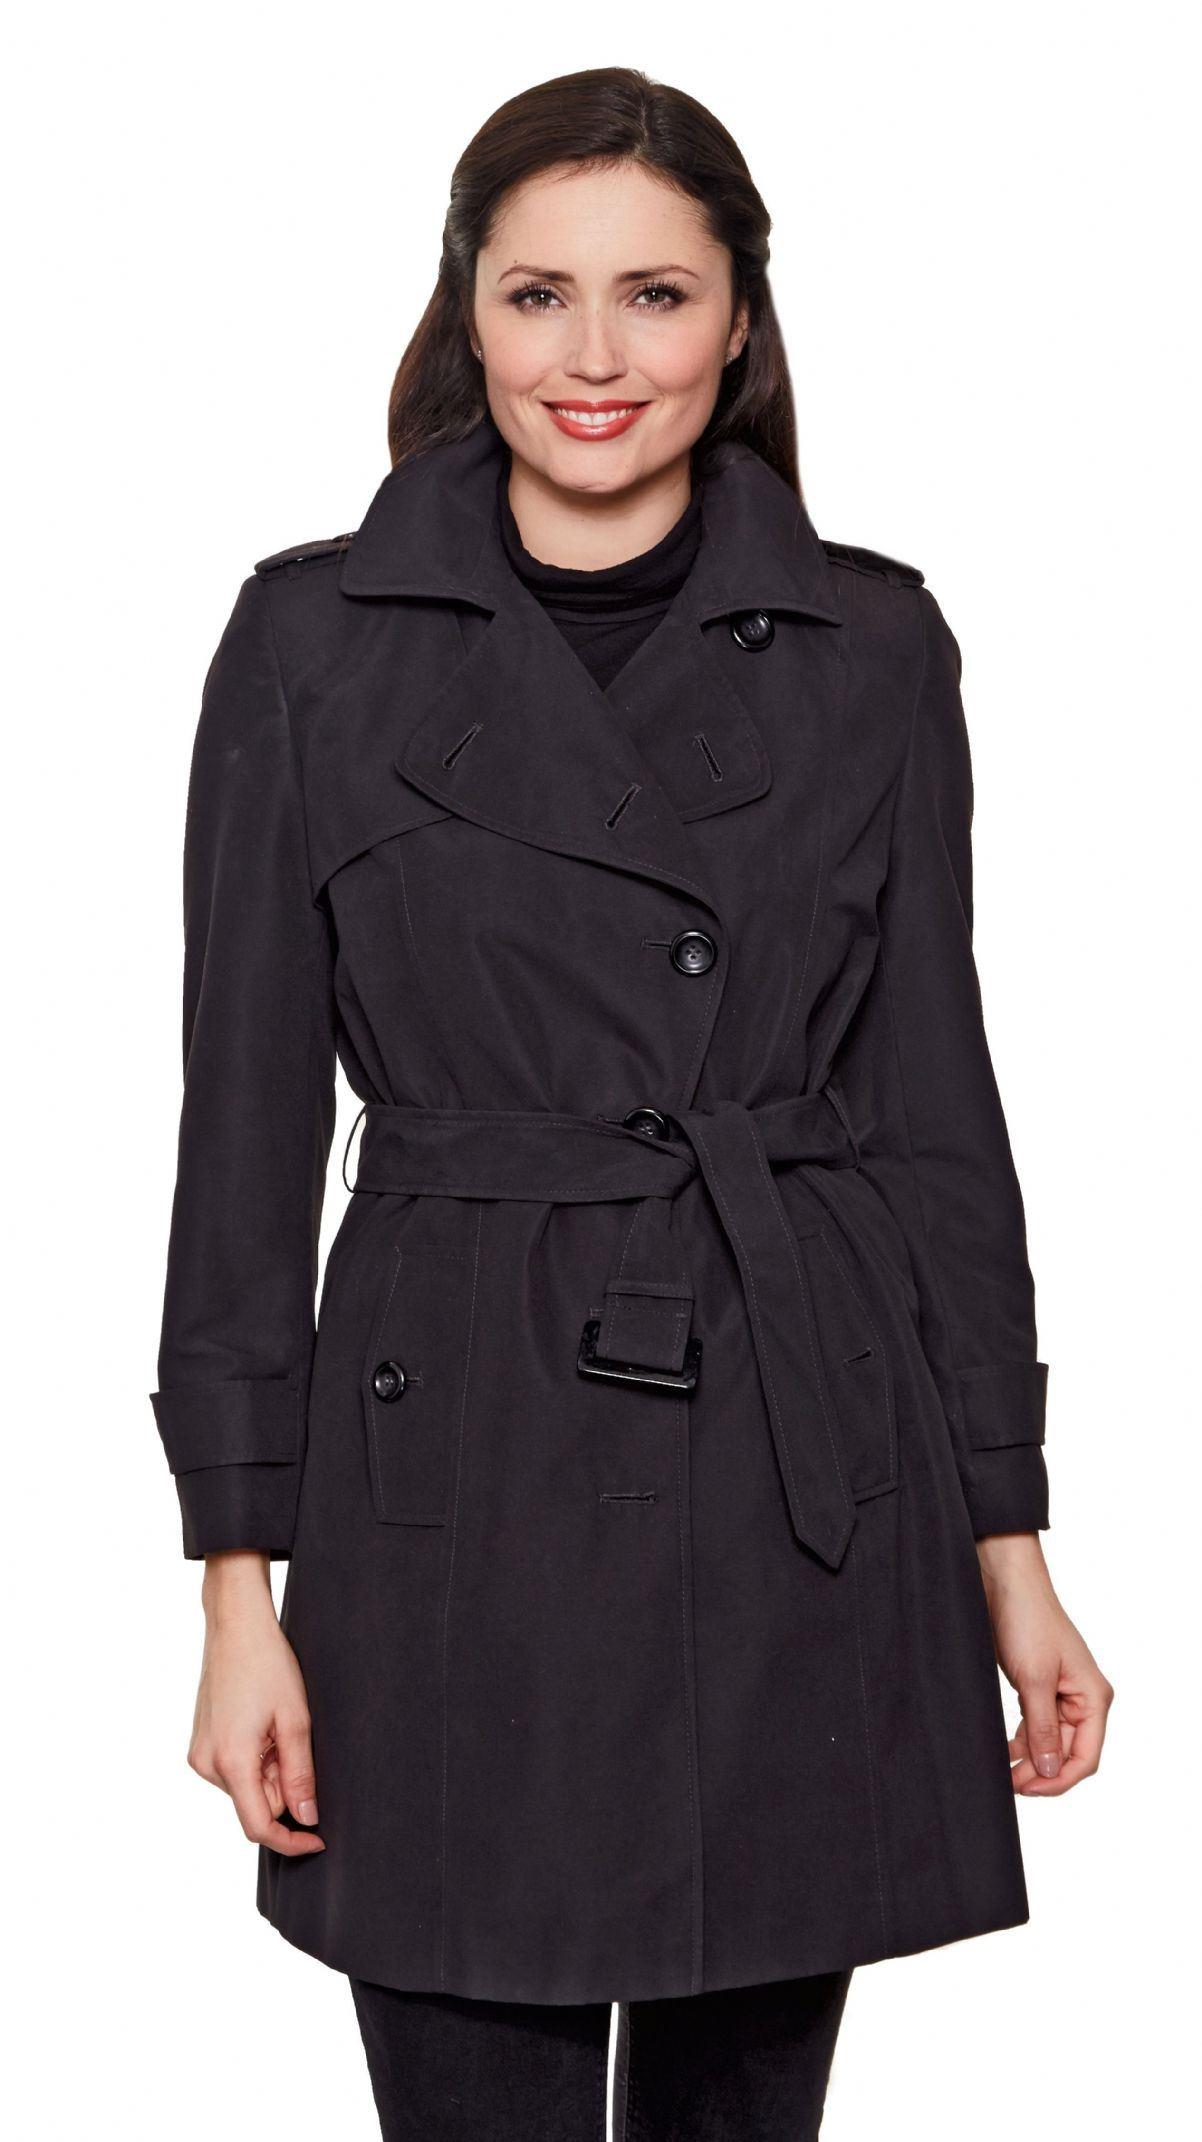 David Barry Womens Short Belted Trench Coat Asymetric Fastening